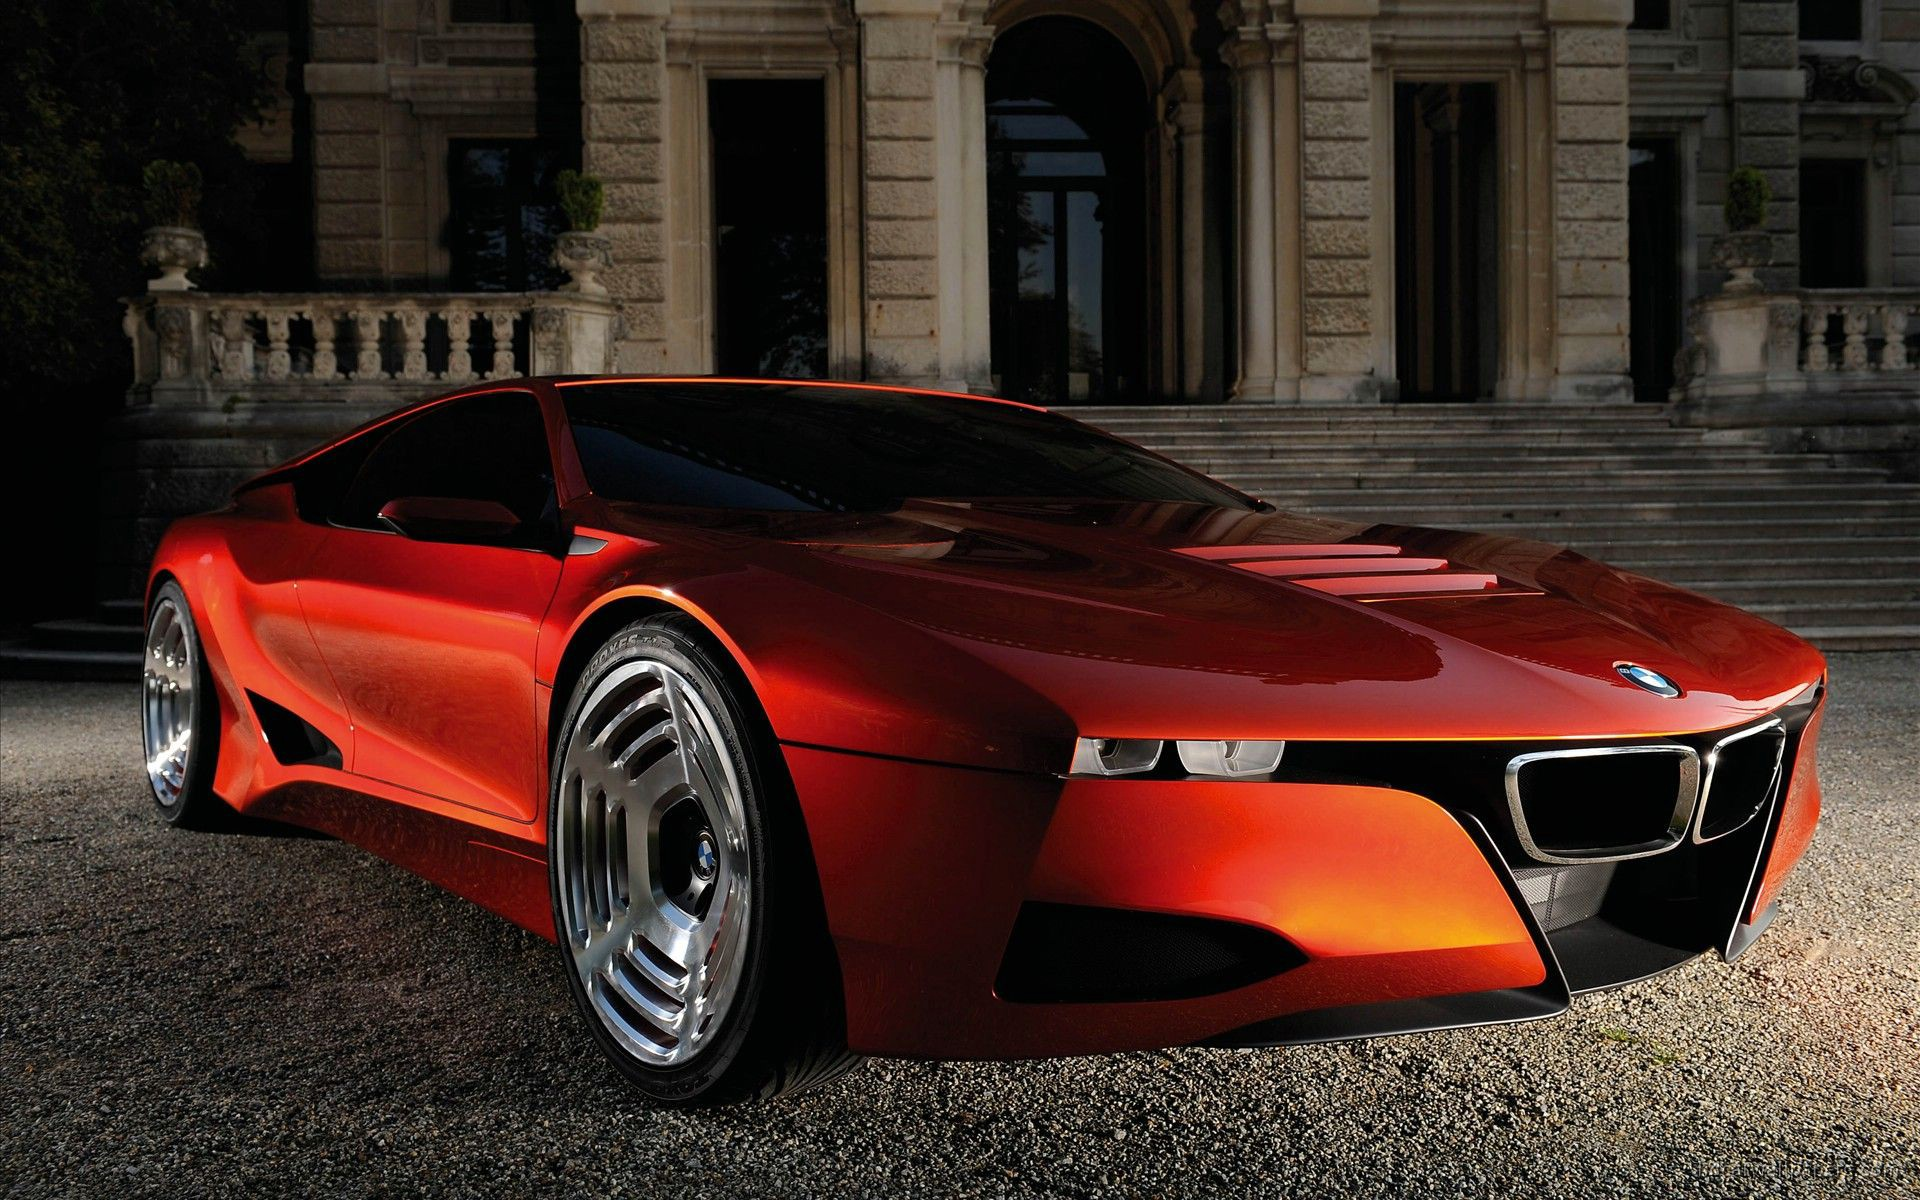 BMW M1 Homage Concept 2 Wallpaper | HD Car Wallpapers | ID ...